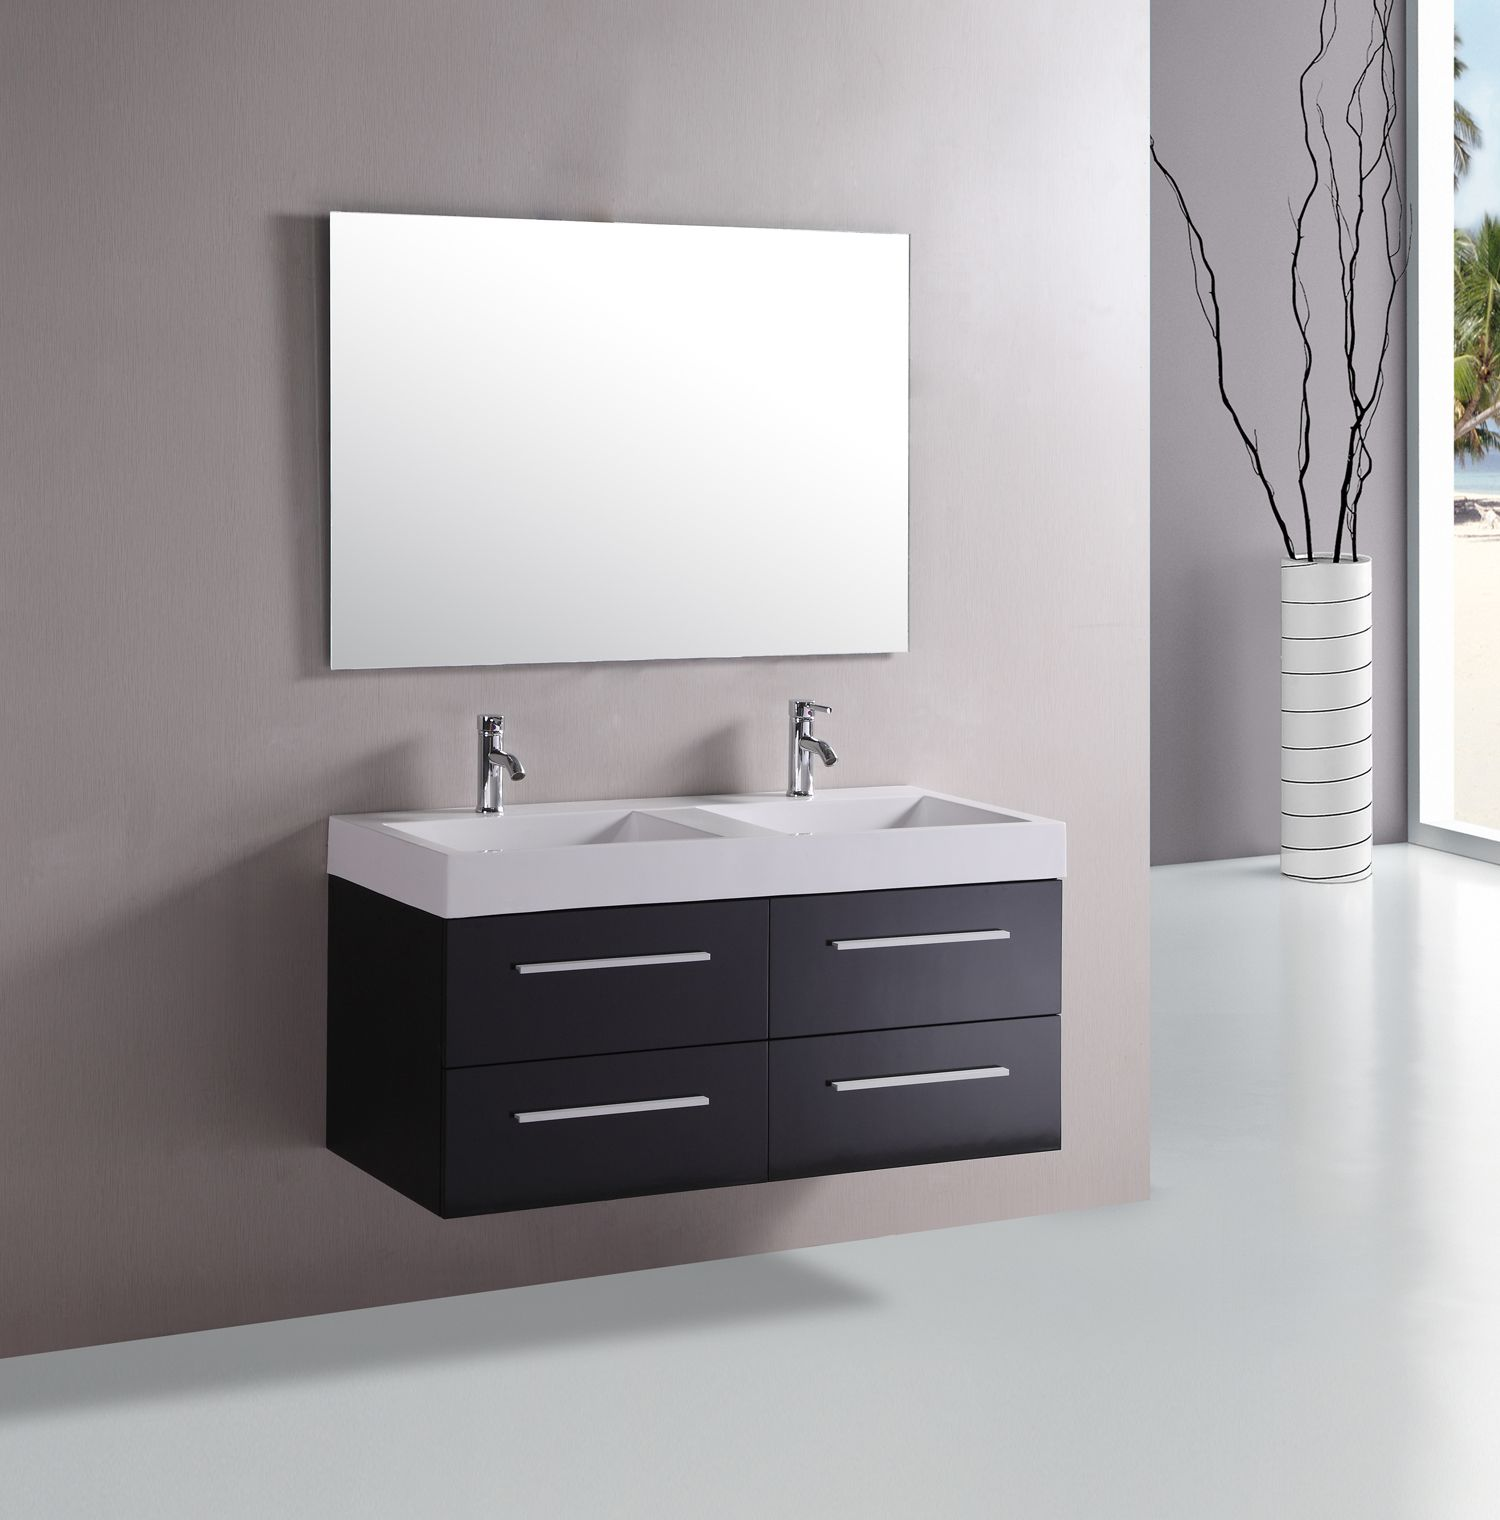 Amazing Design Of The Grey Wall Added With White Sink And Mirror Ideas As The Floating Bathroom Vanity